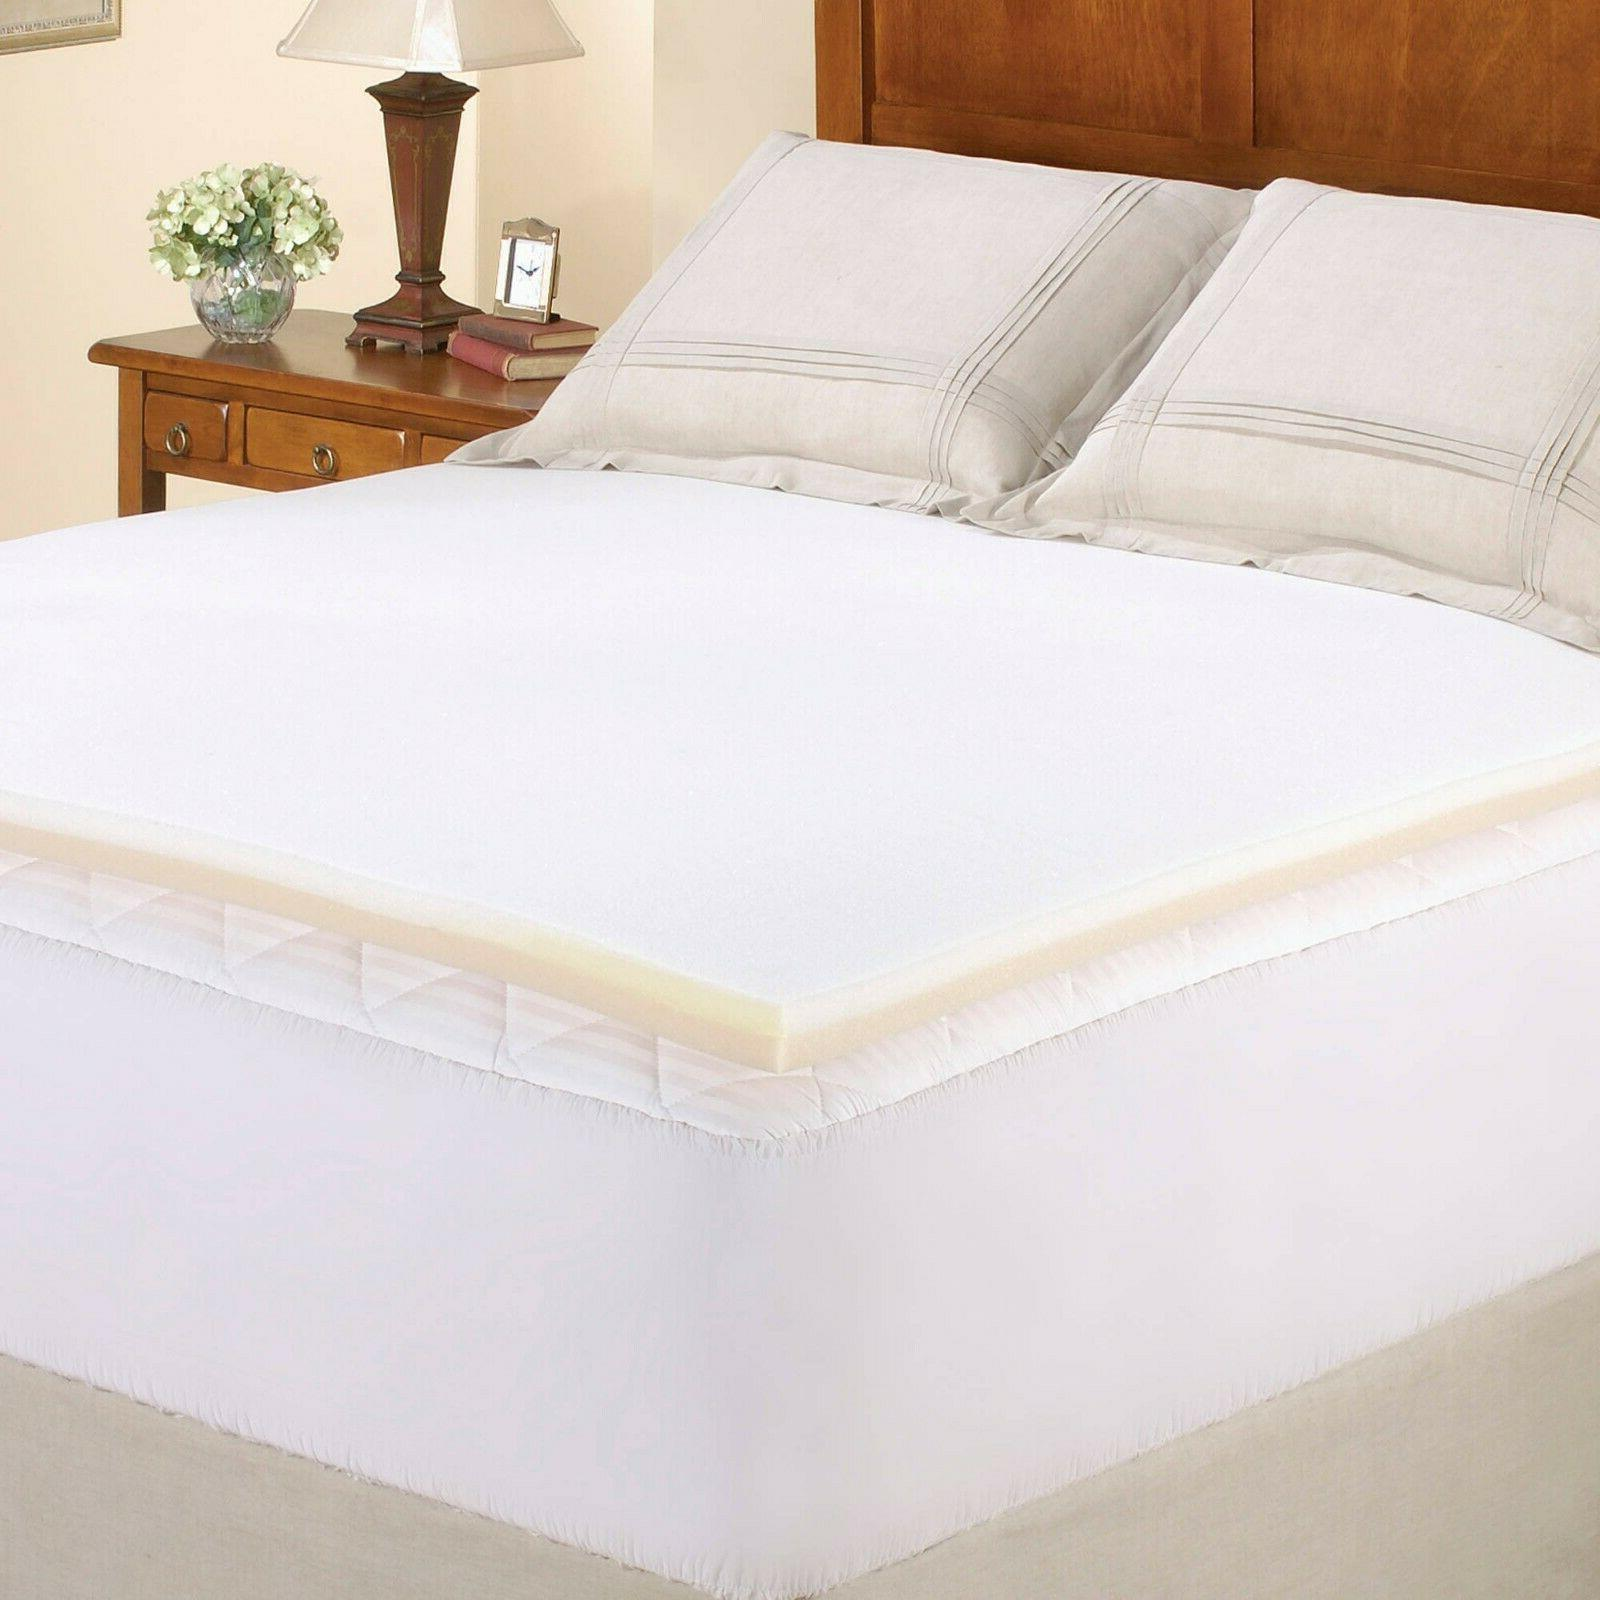 NEW Mattress Topper 1 Inch Pad  FOR Memory Foam Twin size